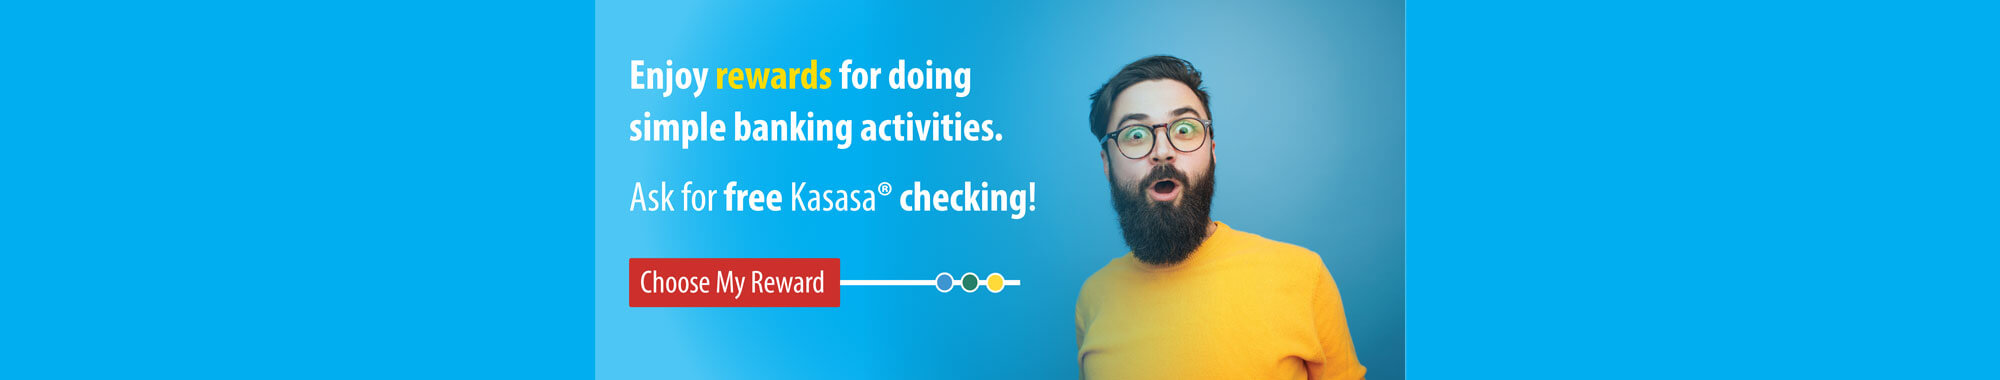 Ask for free Kasasa checking!